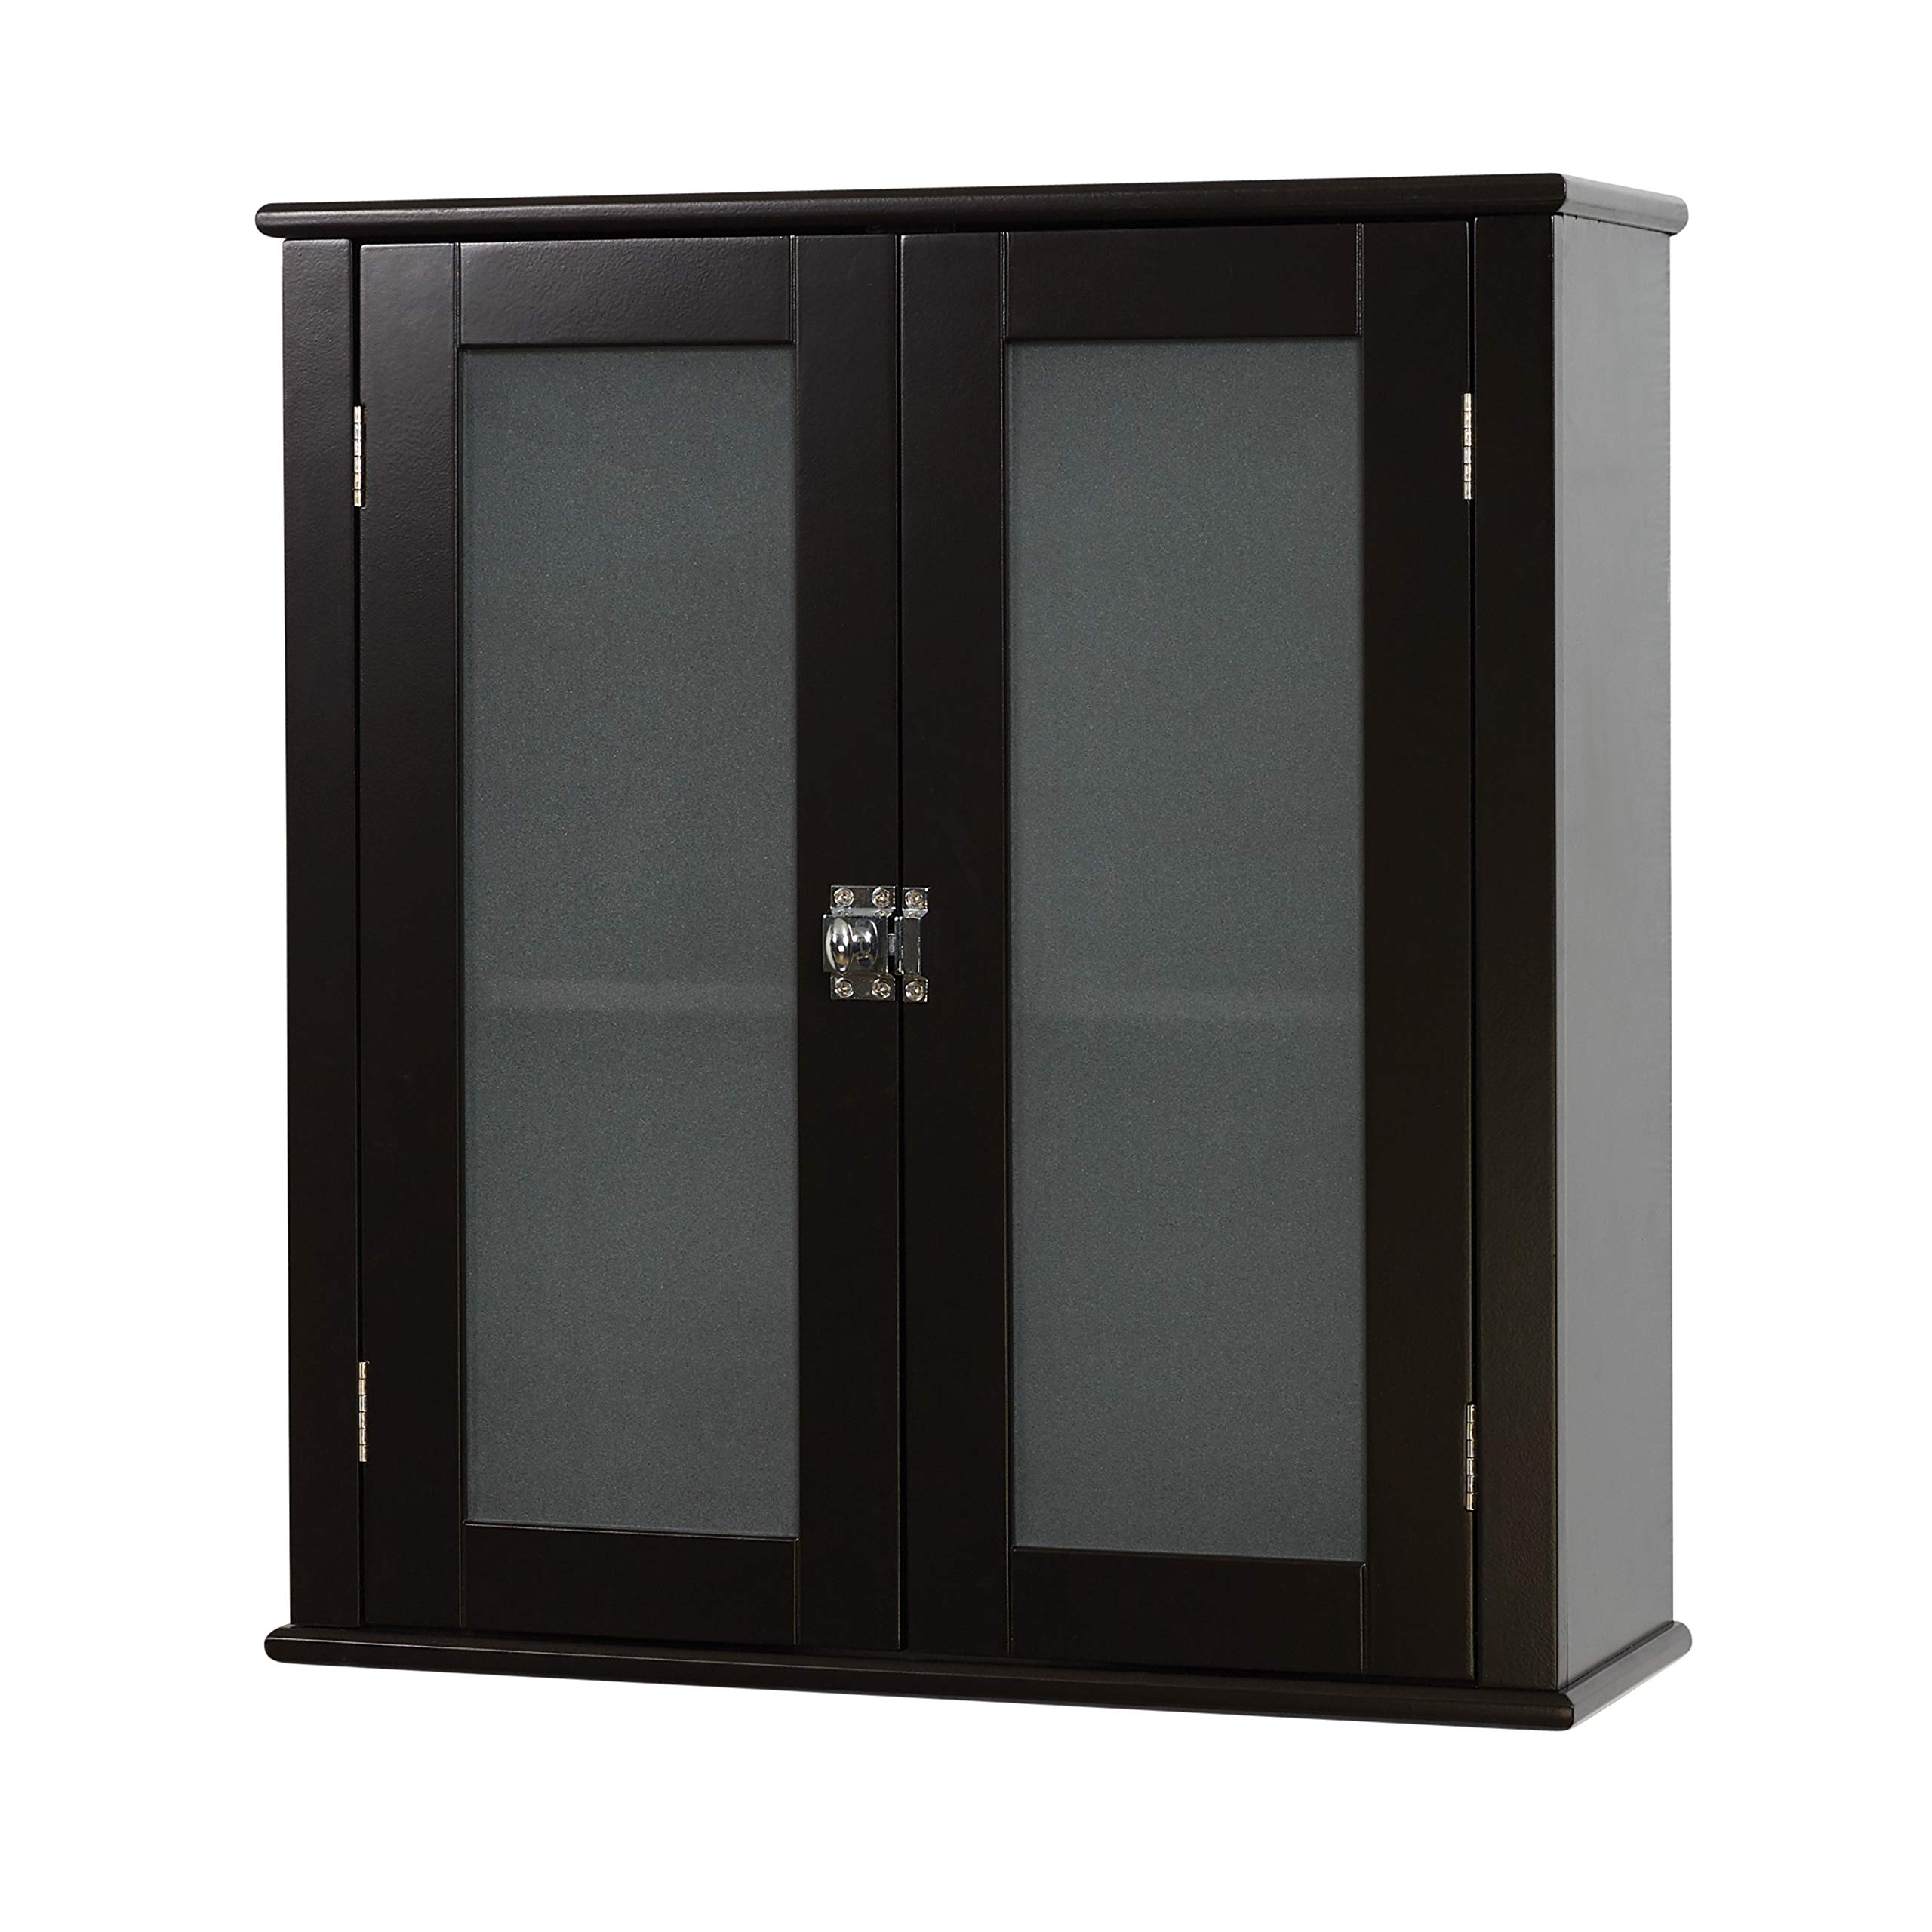 Zenna Home Classic Wall Cabinet, Espresso by Zenna Home (Image #1)